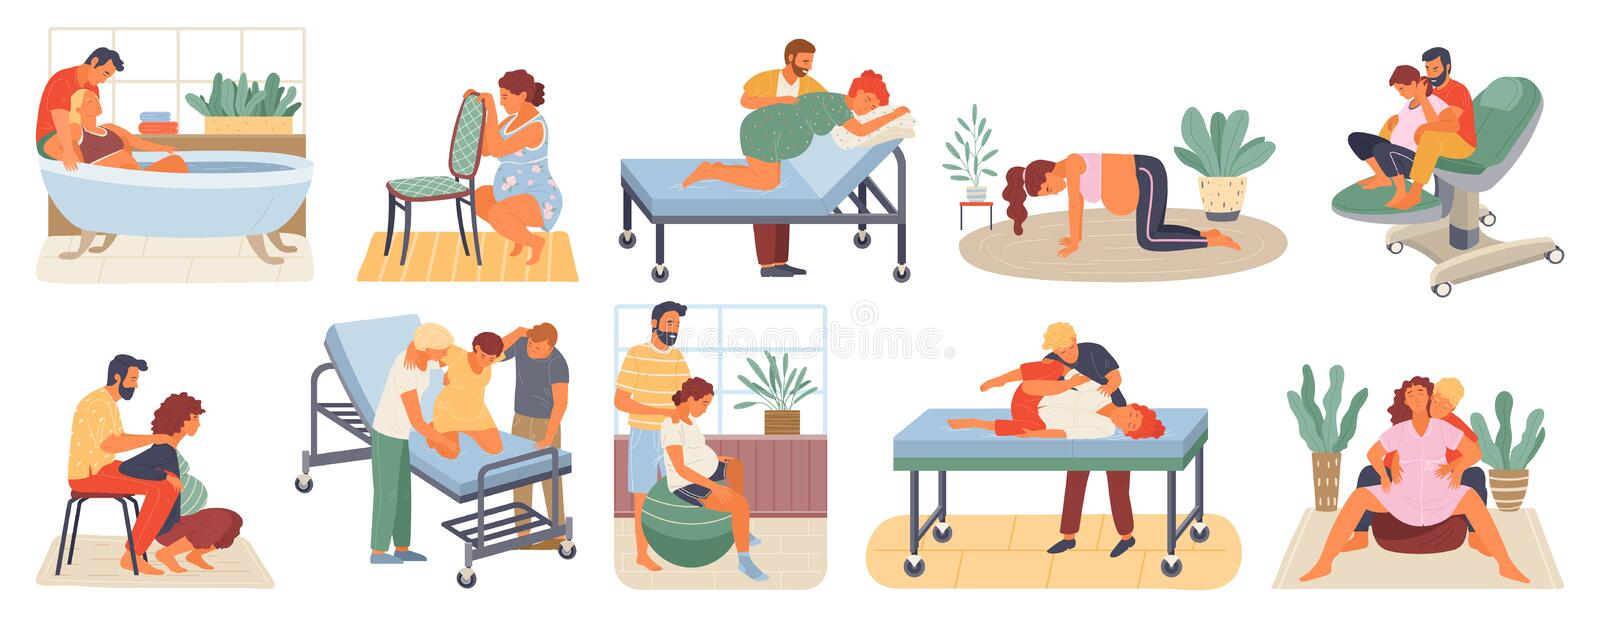 Pregnant Woman, Birth Positions, Infant Vector. Position of pregnant woman, reproduction set, man obstetrics. Female with belly giving birth on floor, chair and stock illustration